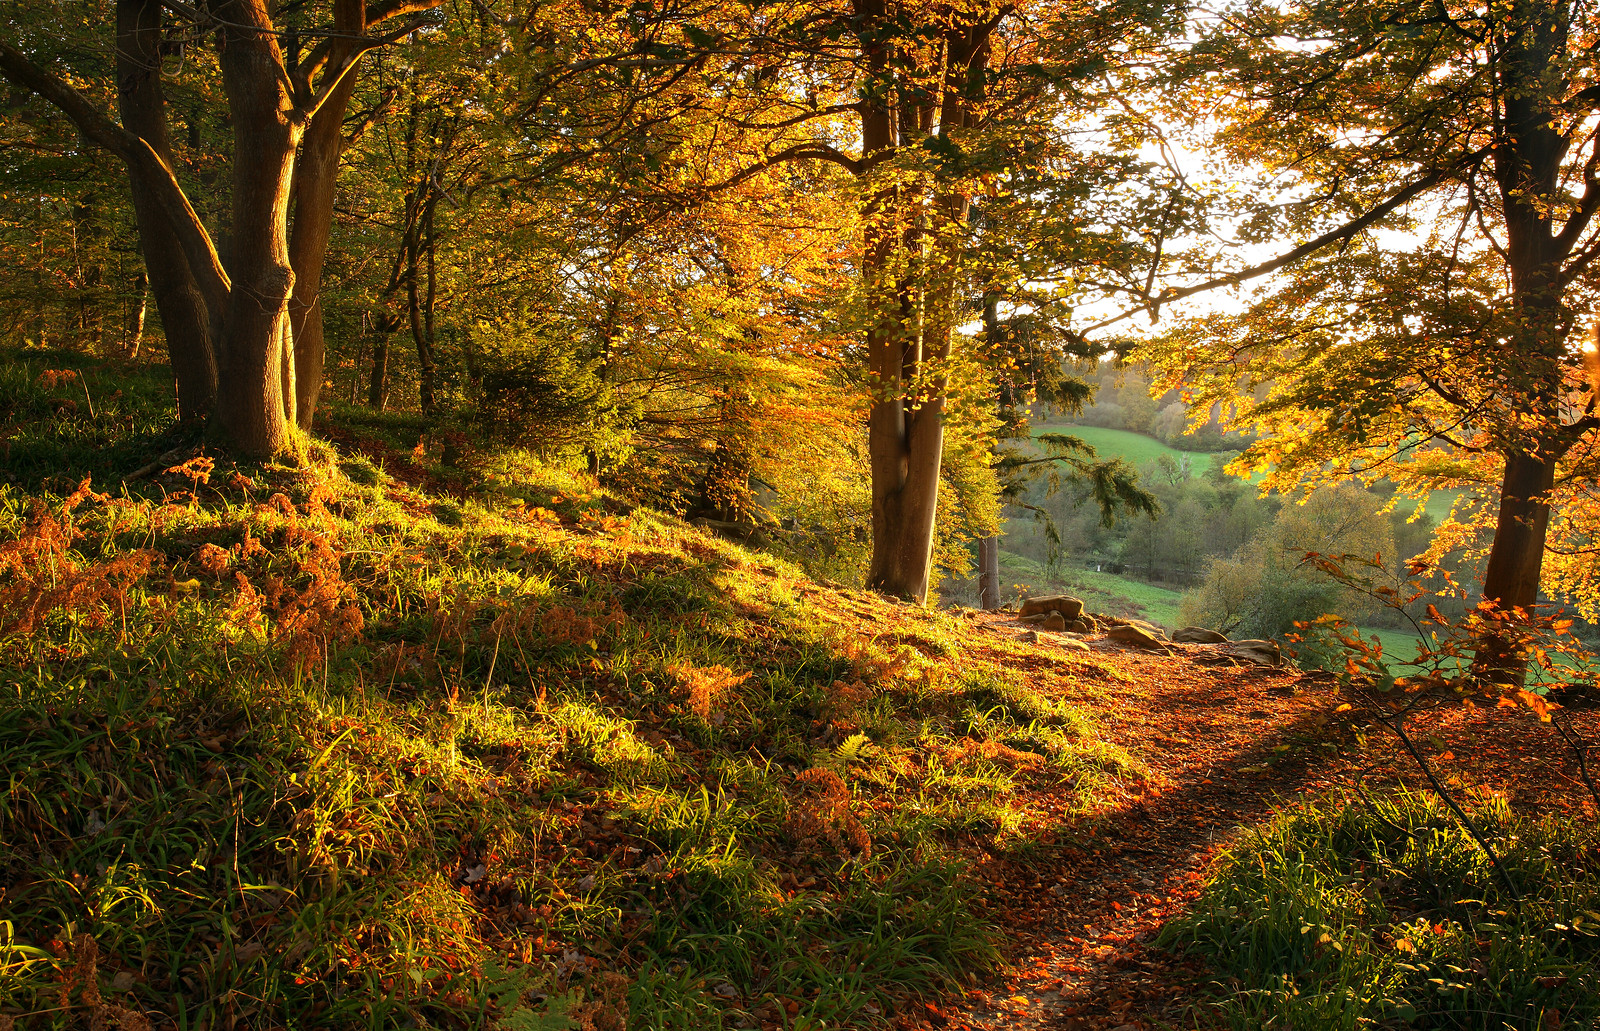 Sunset in an Autumn Woodland